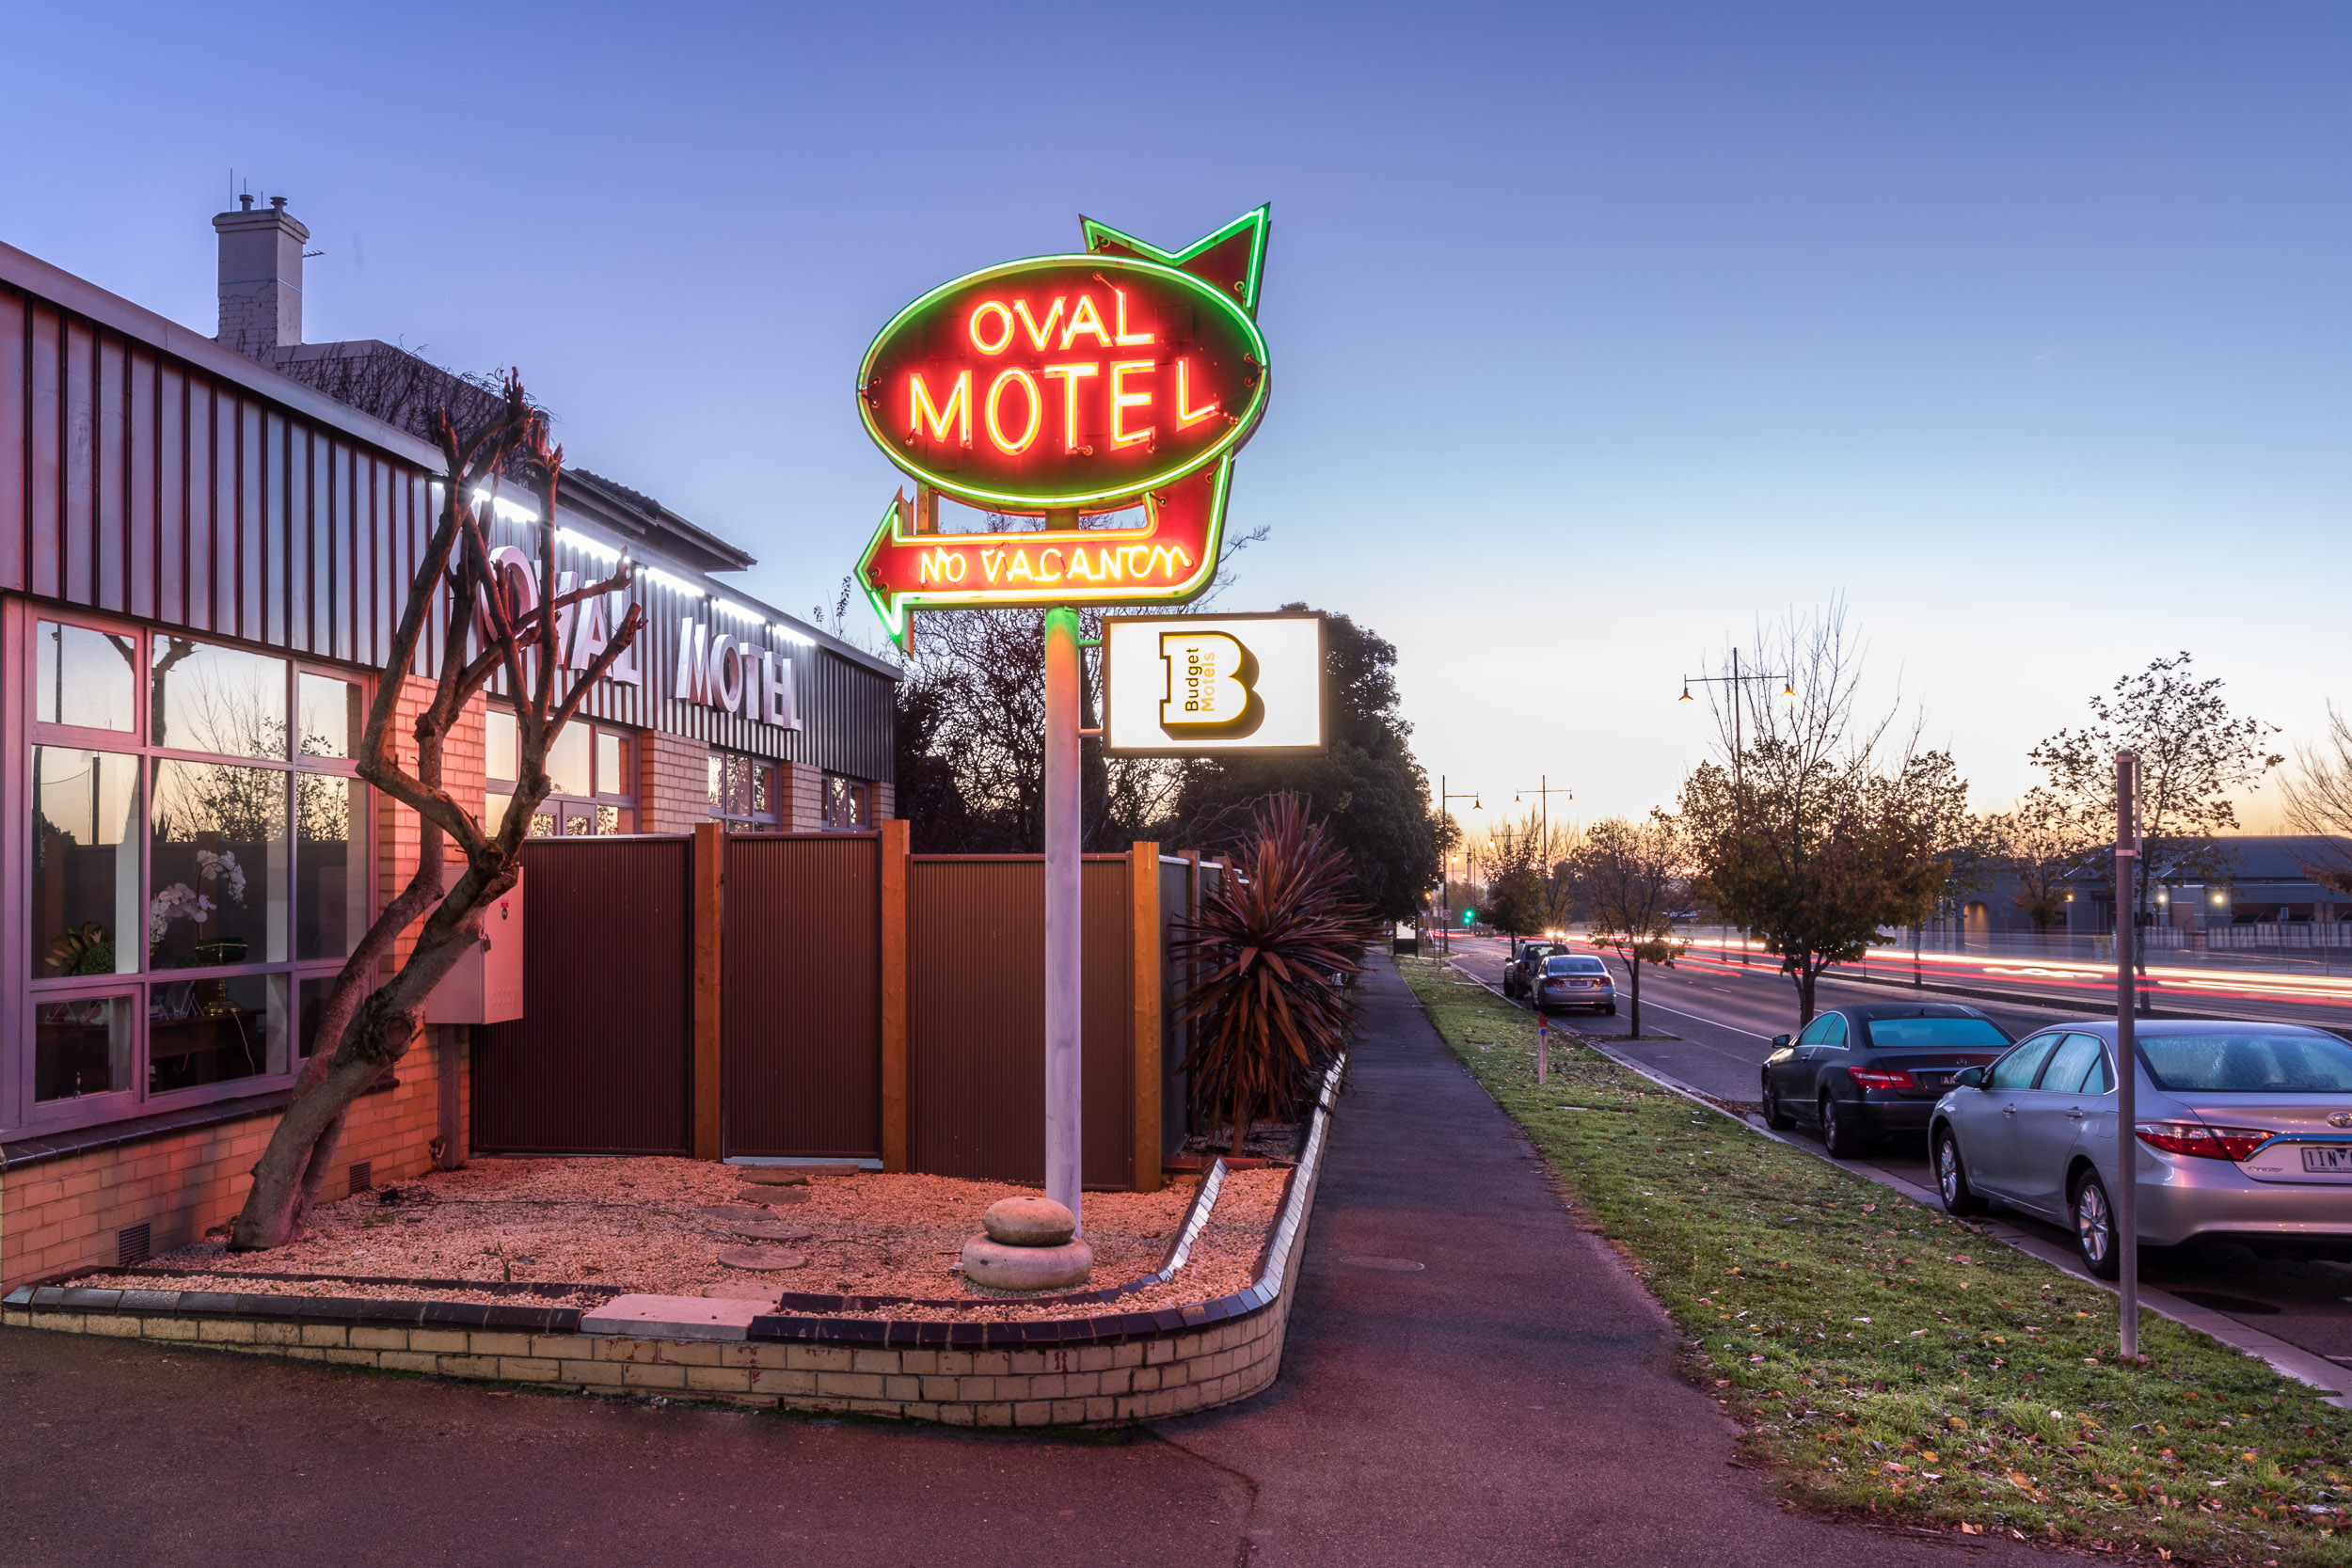 oval-motel-bendigo-3.jpg